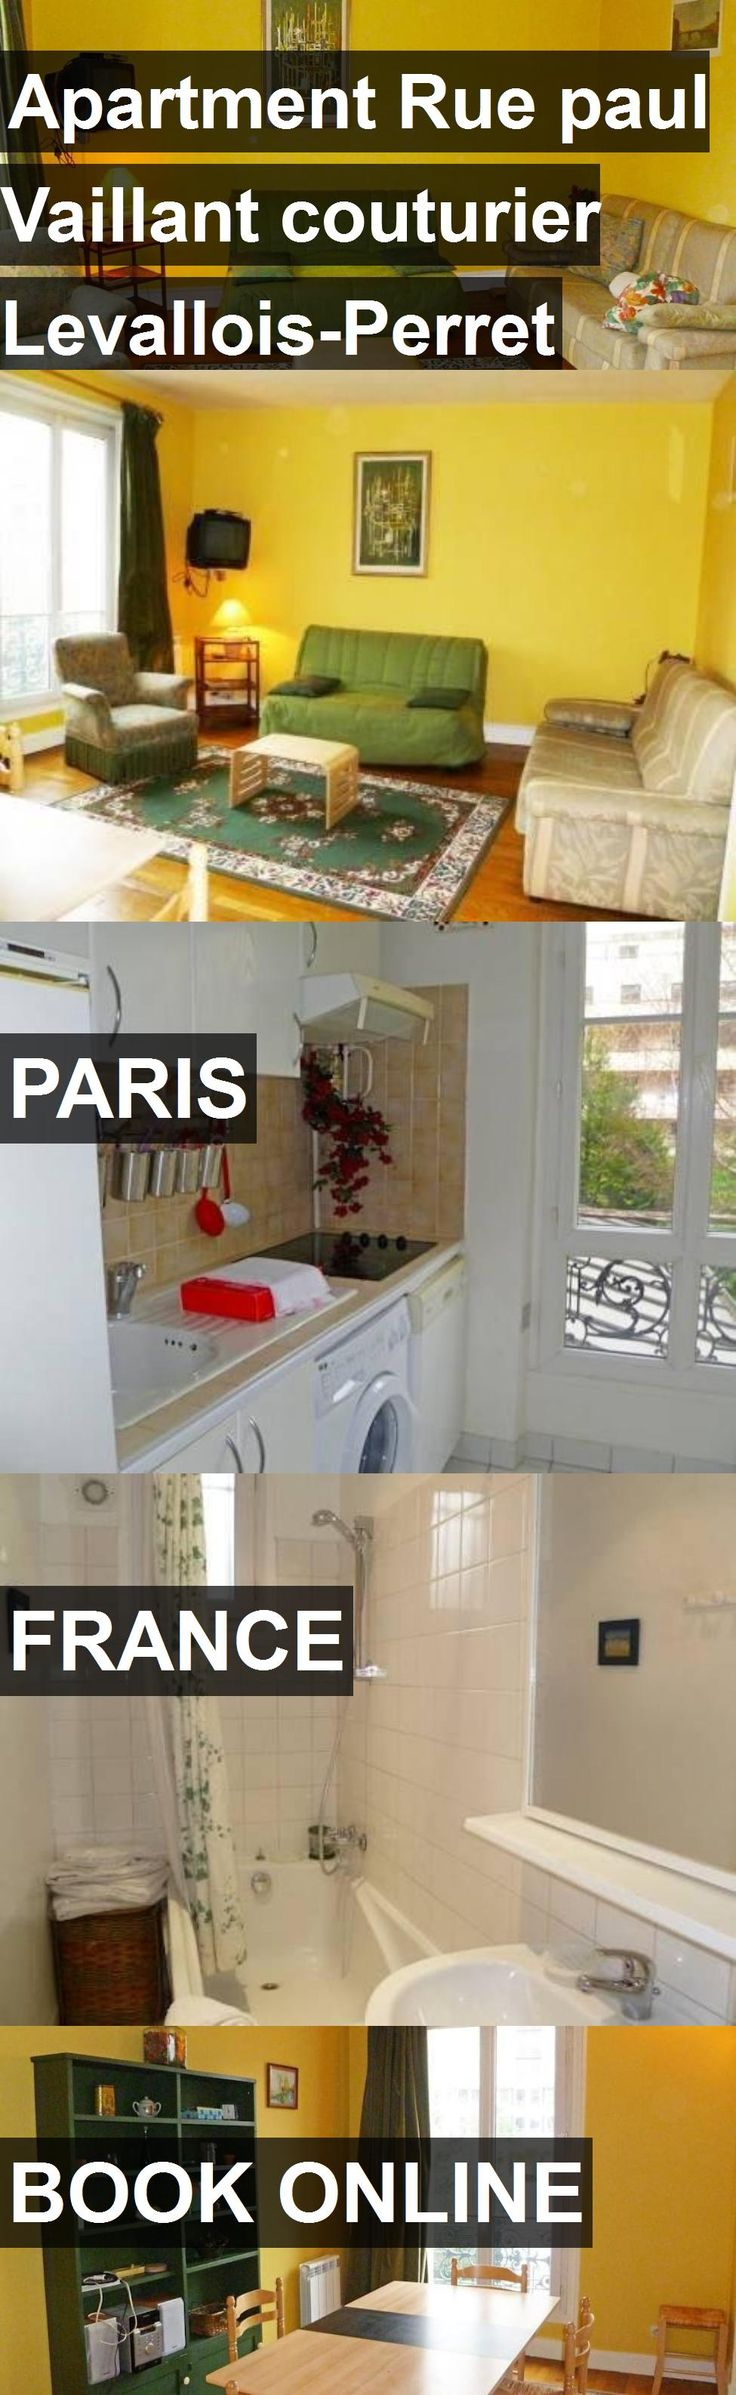 Hotel Apartment Rue paul Vaillant couturier Levallois-Perret in Paris, France. For more information, photos, reviews and best prices please follow the link. #France #Paris #ApartmentRuepaulVaillantcouturierLevallois-Perret #hotel #travel #vacation